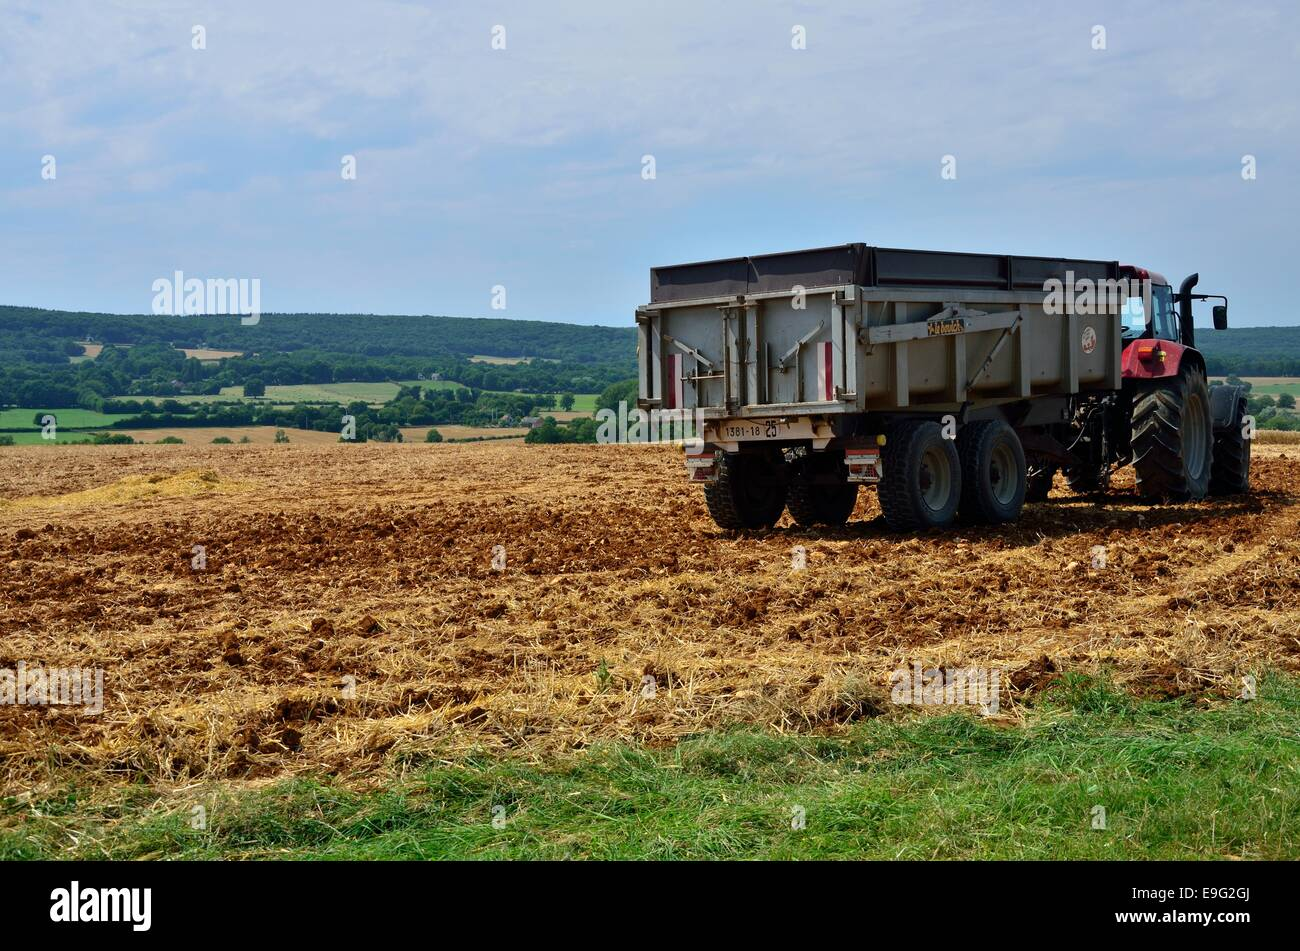 Lying on ochre-yellow colour land, a truck is resting after harvesting days ploughing the land. In the center of Stock Photo